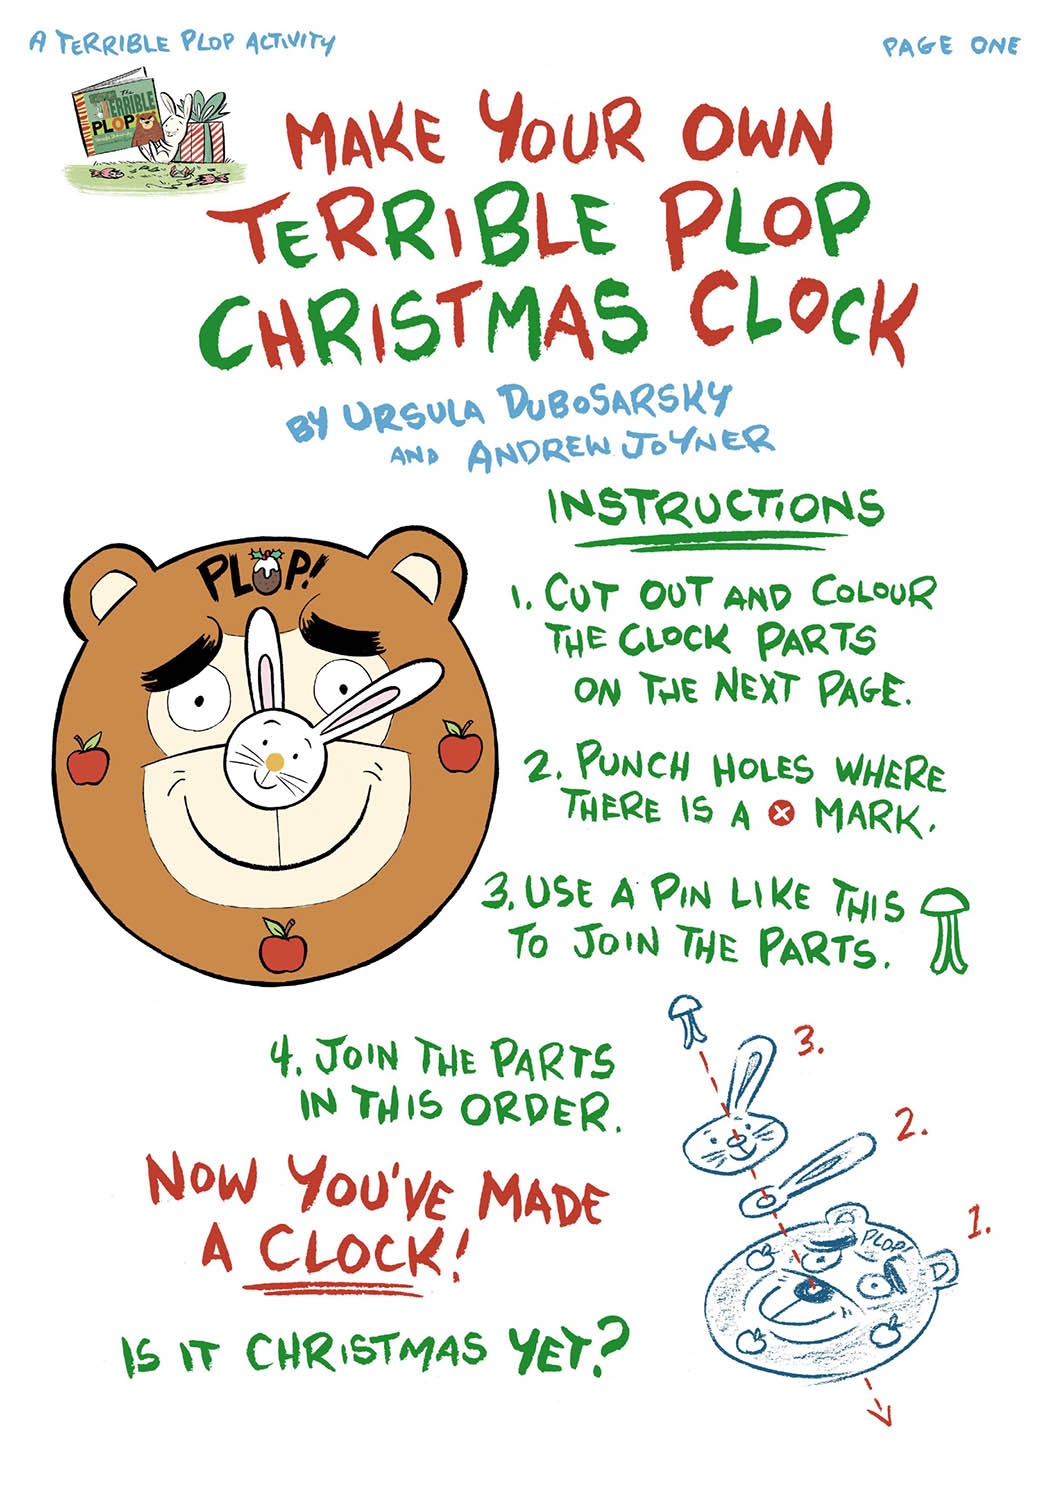 the terrible plop christmas clock